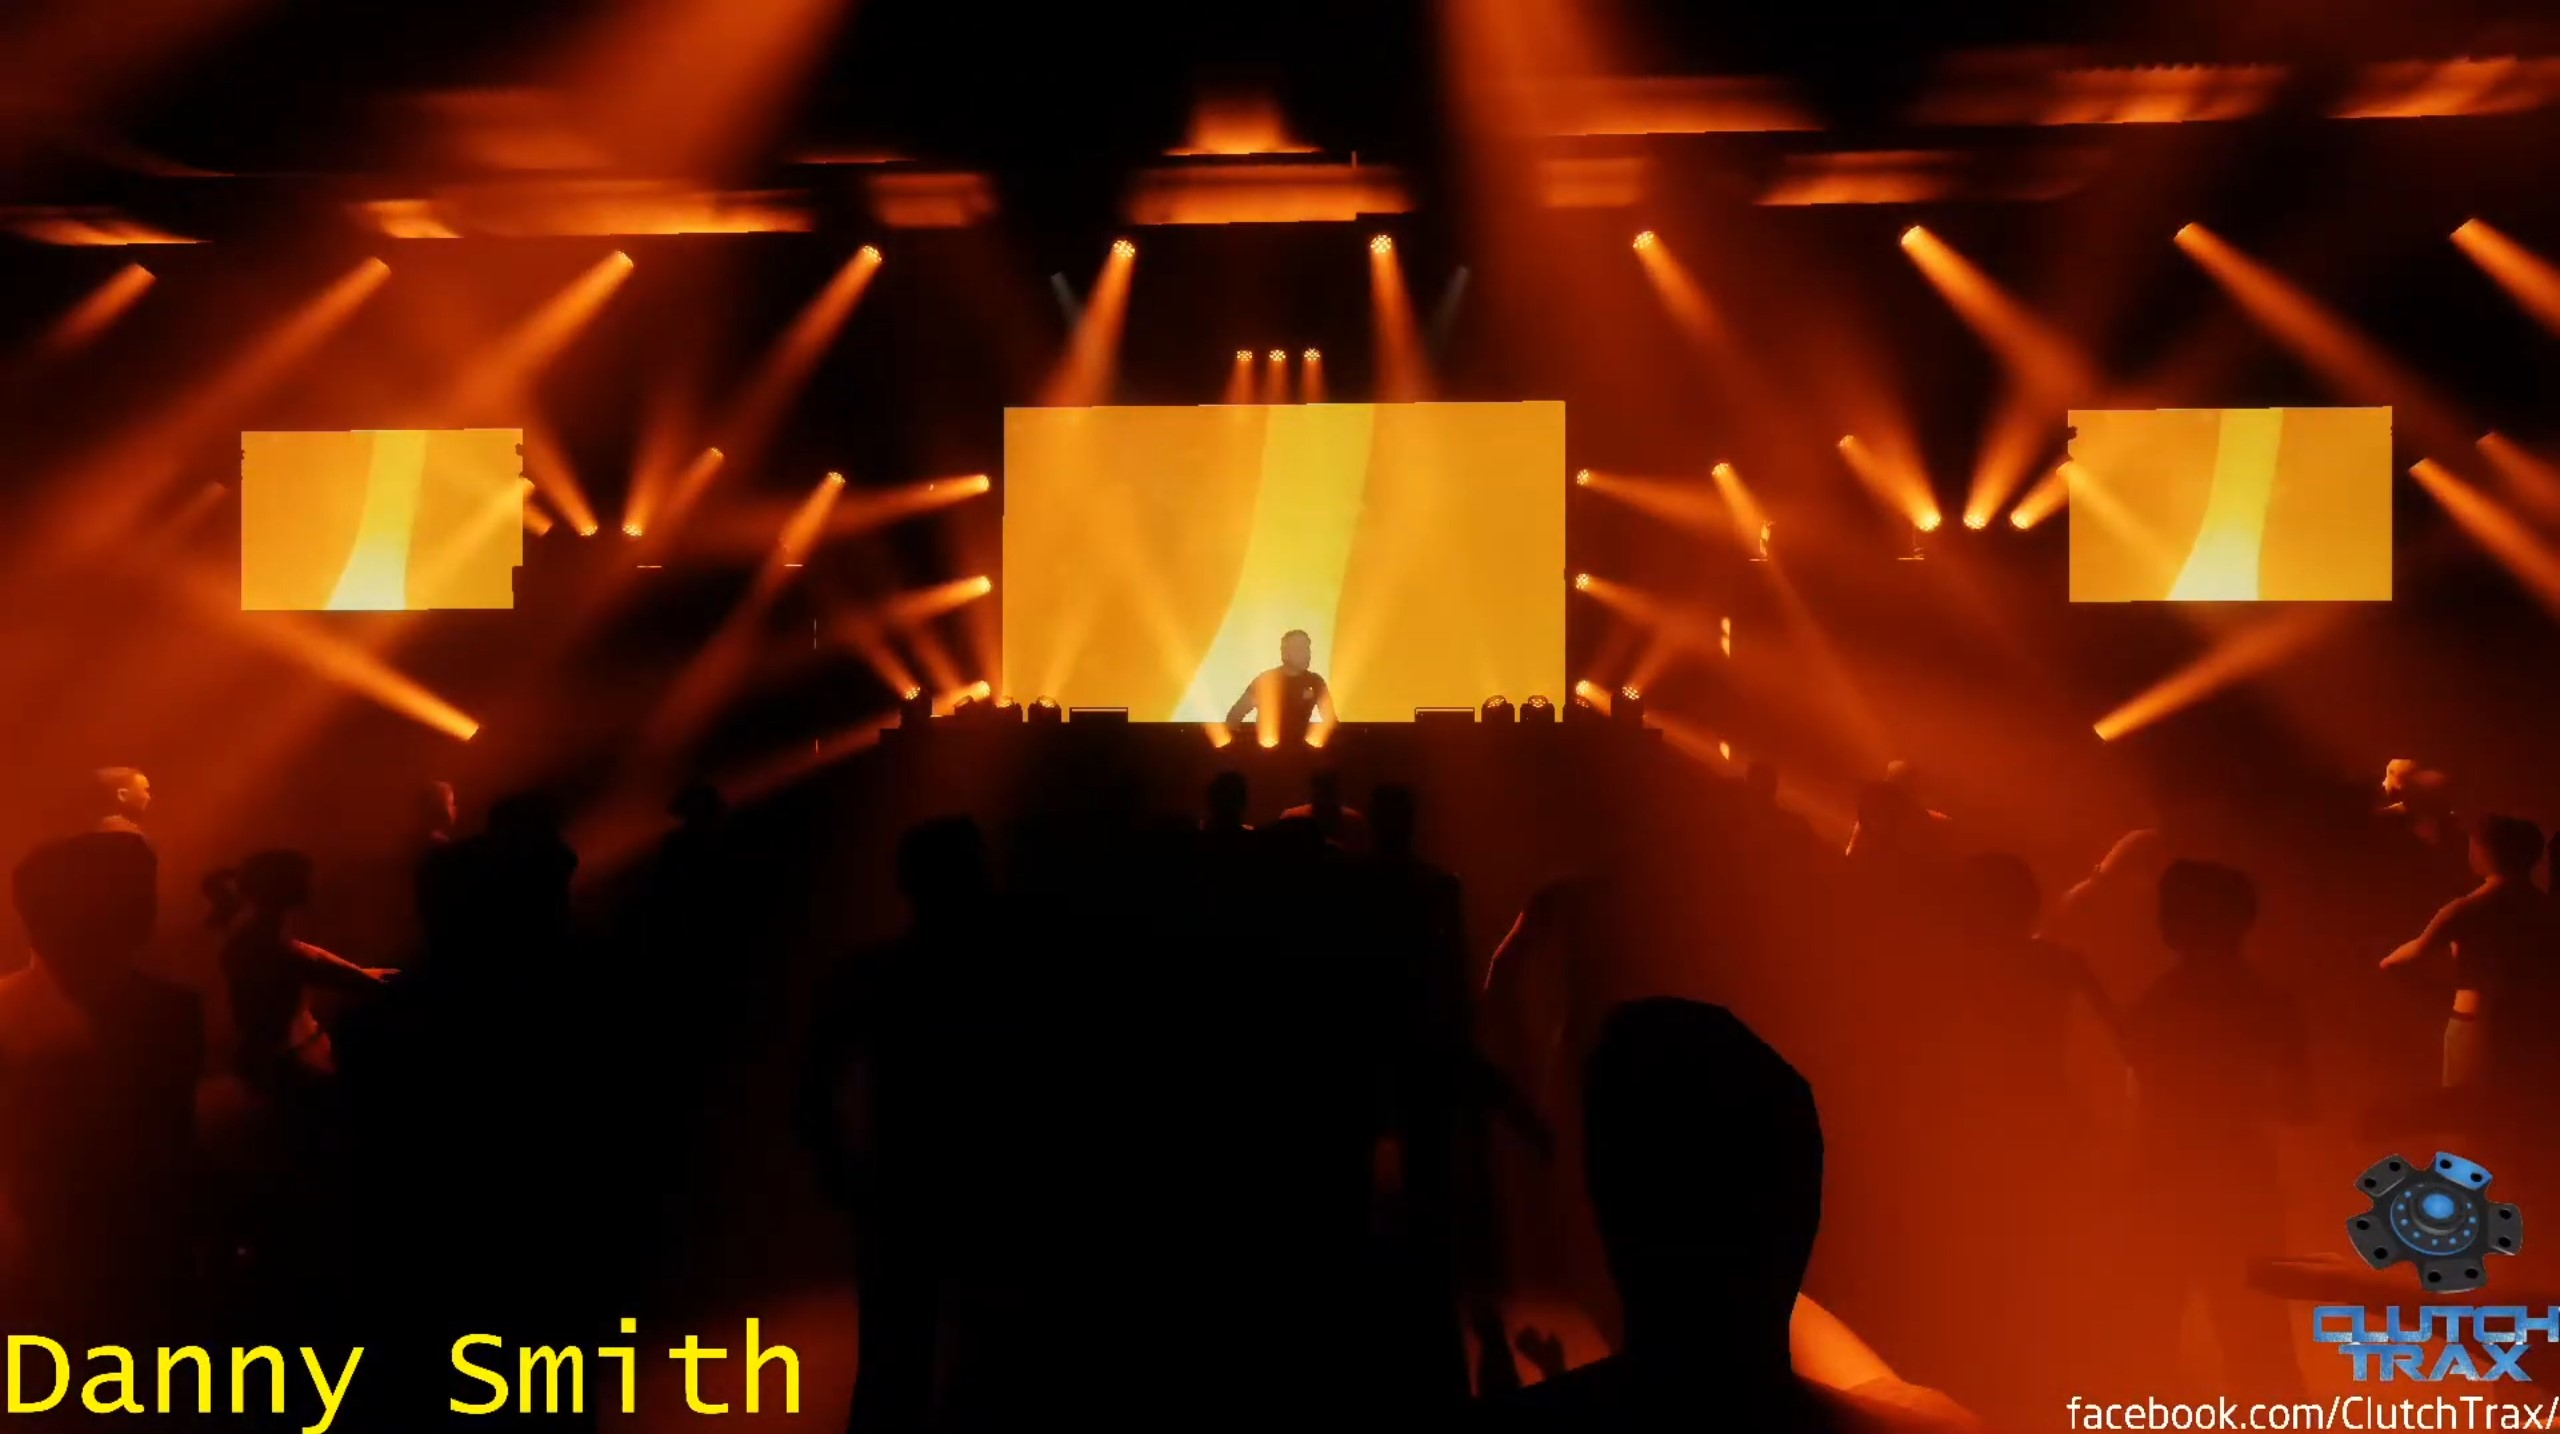 A DJ is virtually added to the main stage of the virtual club, surrounded by orange lighting effects as he performs.